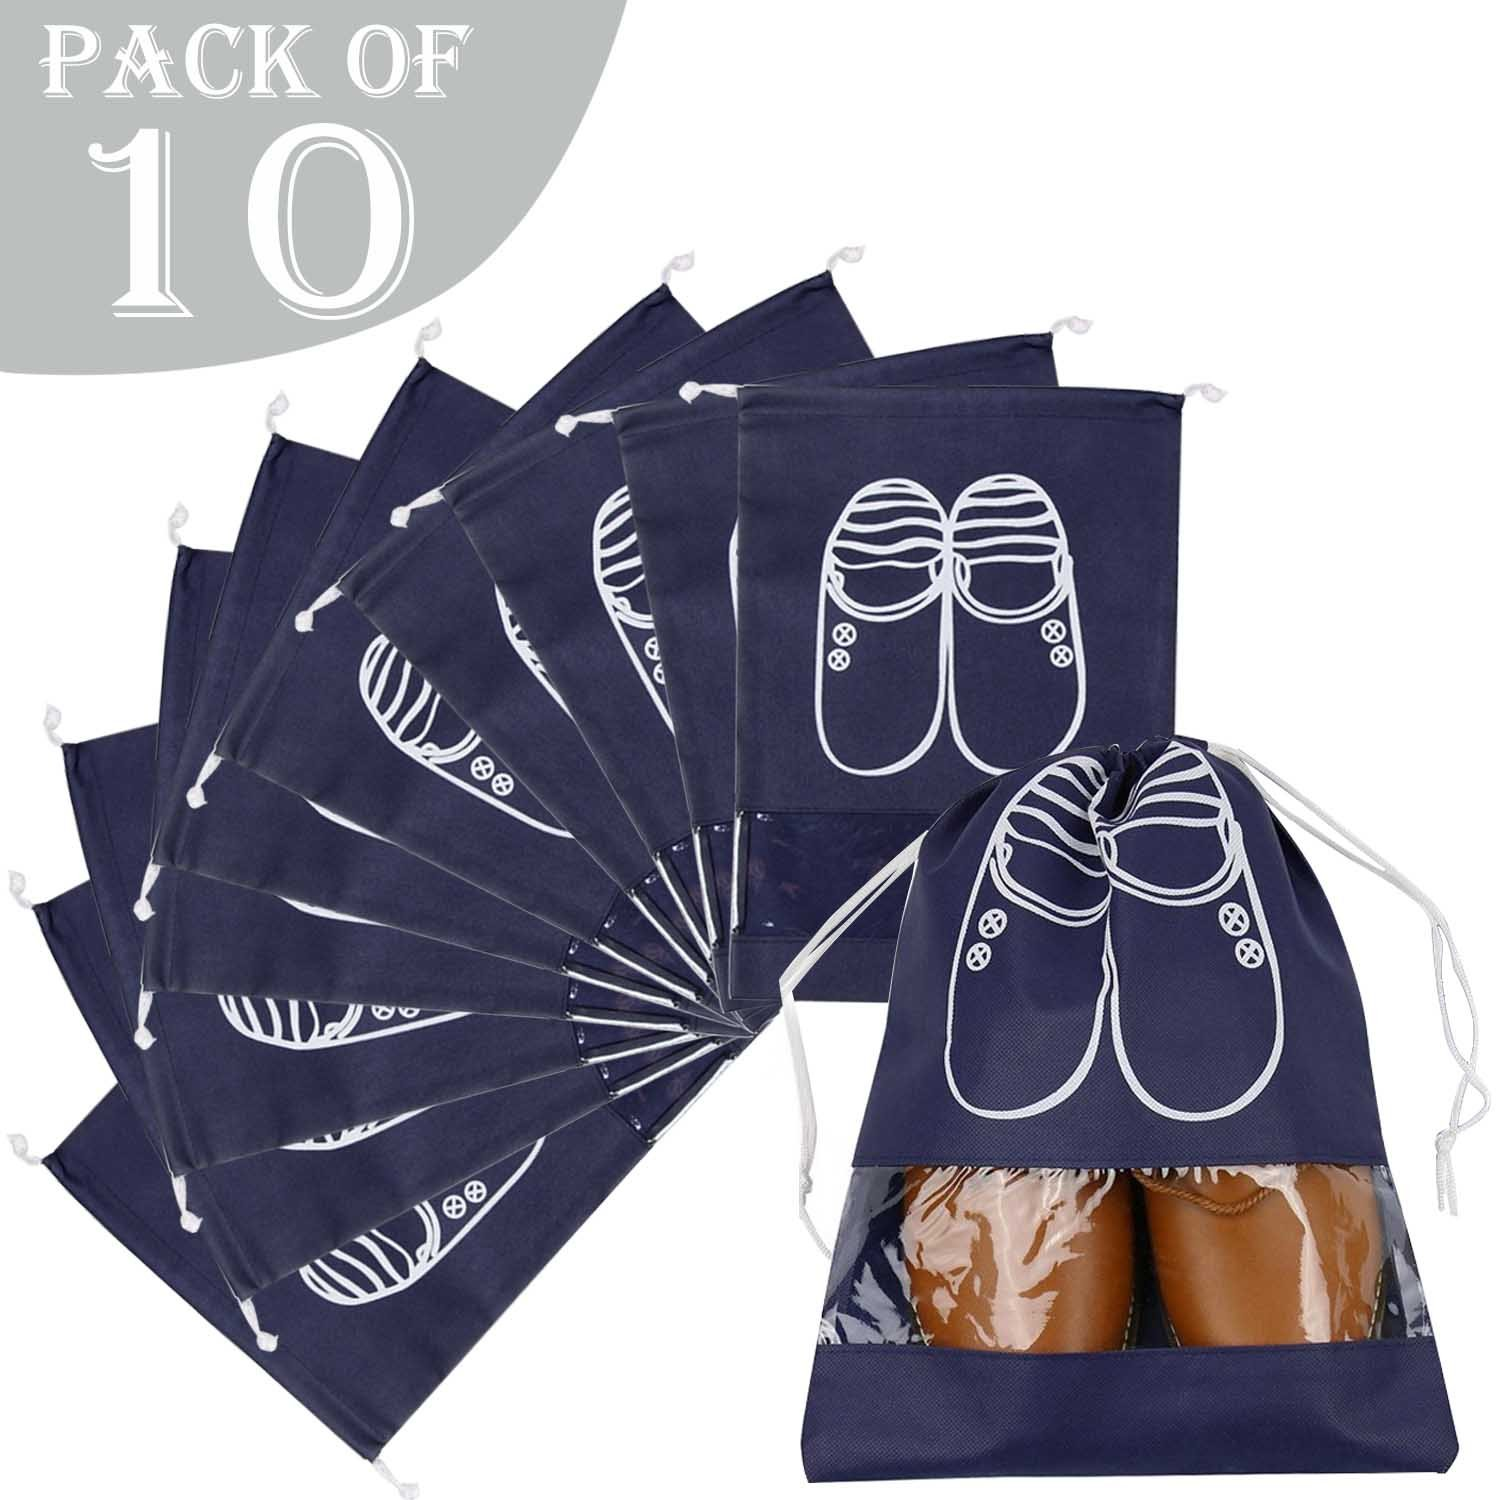 AVESON Pack of 10 Portable Travel Shoe Organiser Bag for Boots, High Heel - Drawstring, Transparent Window, Space Saving Storage Bags, Large Size, Navy Blue